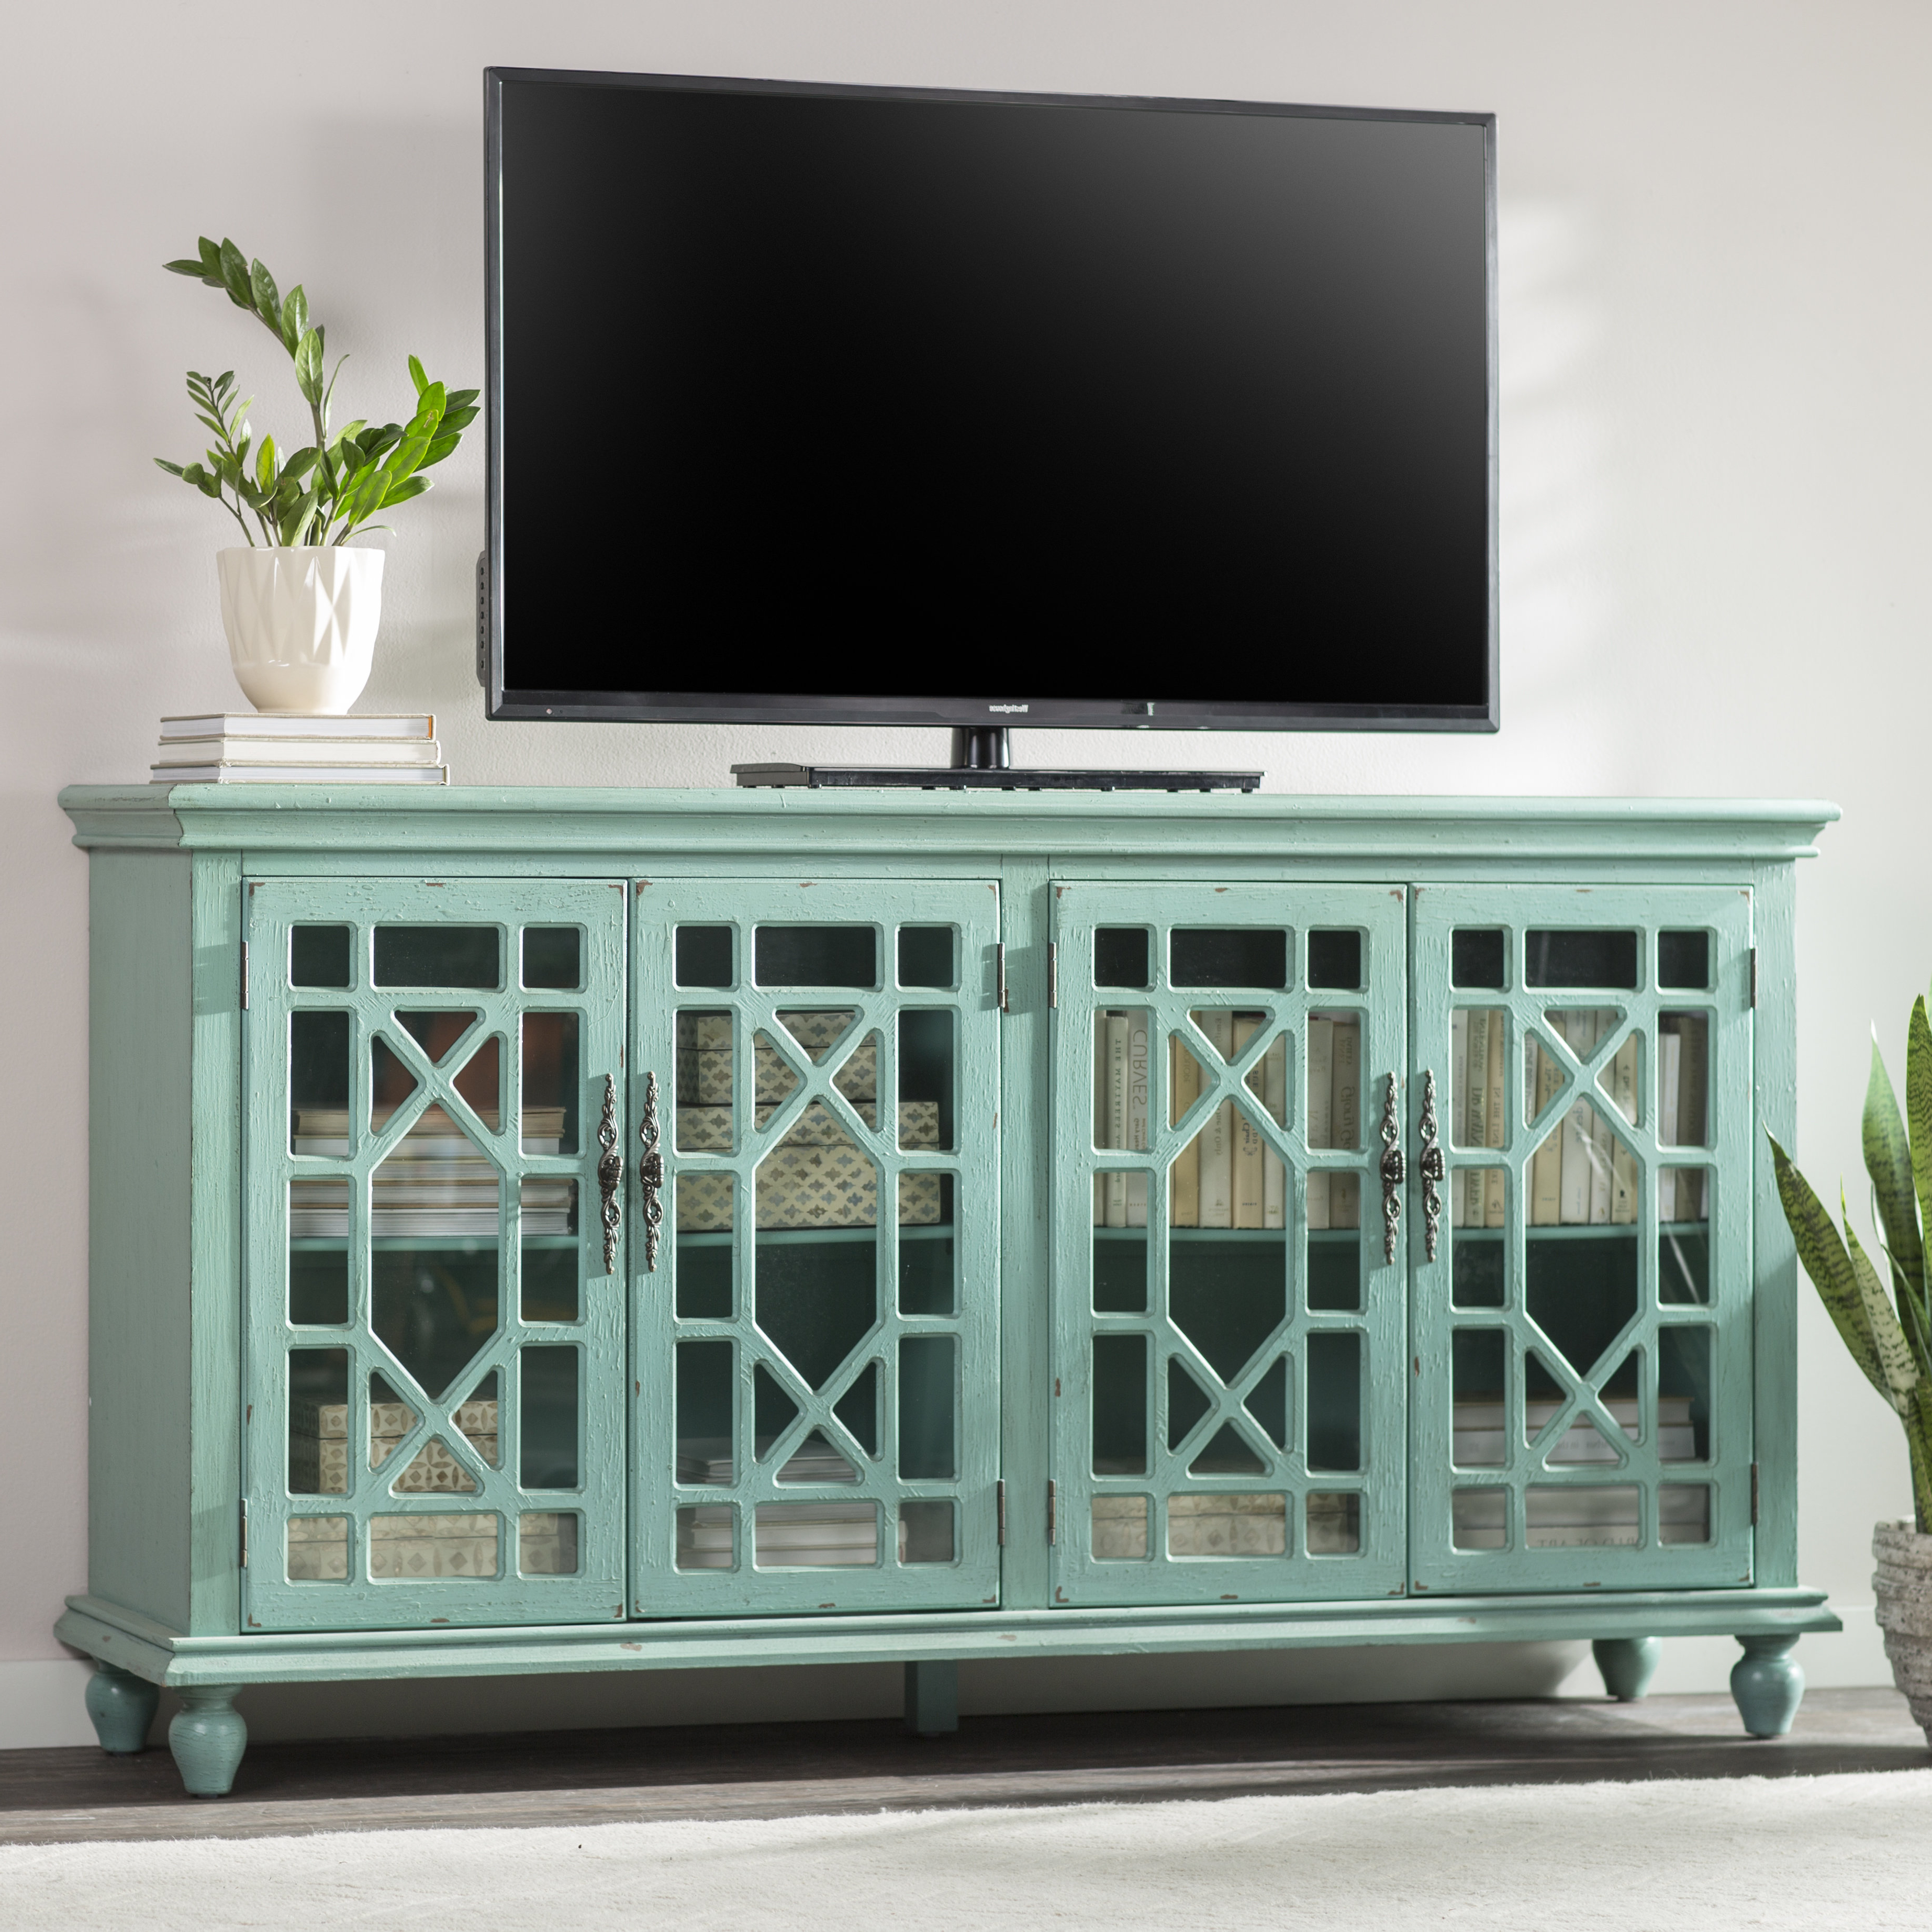 "Well Known Mistana Ira Tv Stand For Tvs Up To 70"" With Colefax Vintage Tv Stands For Tvs Up To 78"" (Gallery 7 of 20)"